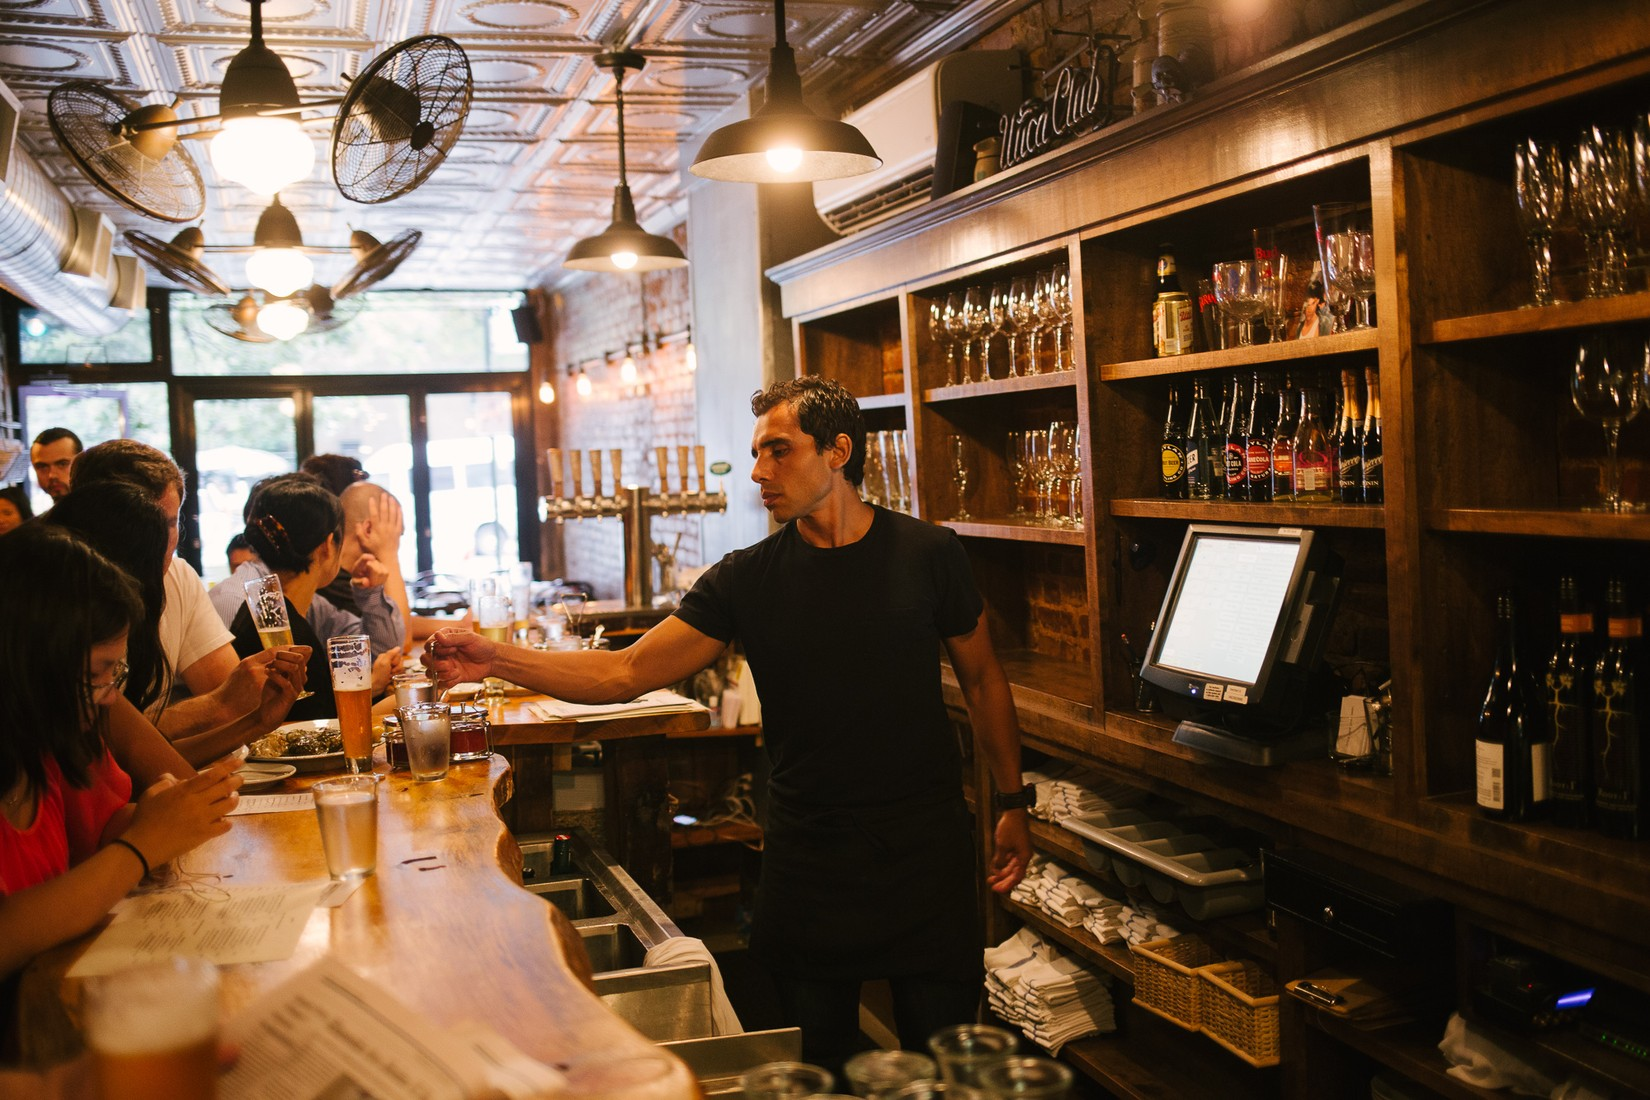 Upstate Craft Beer & Oyster Bar - East Village - New York - The Infatuation